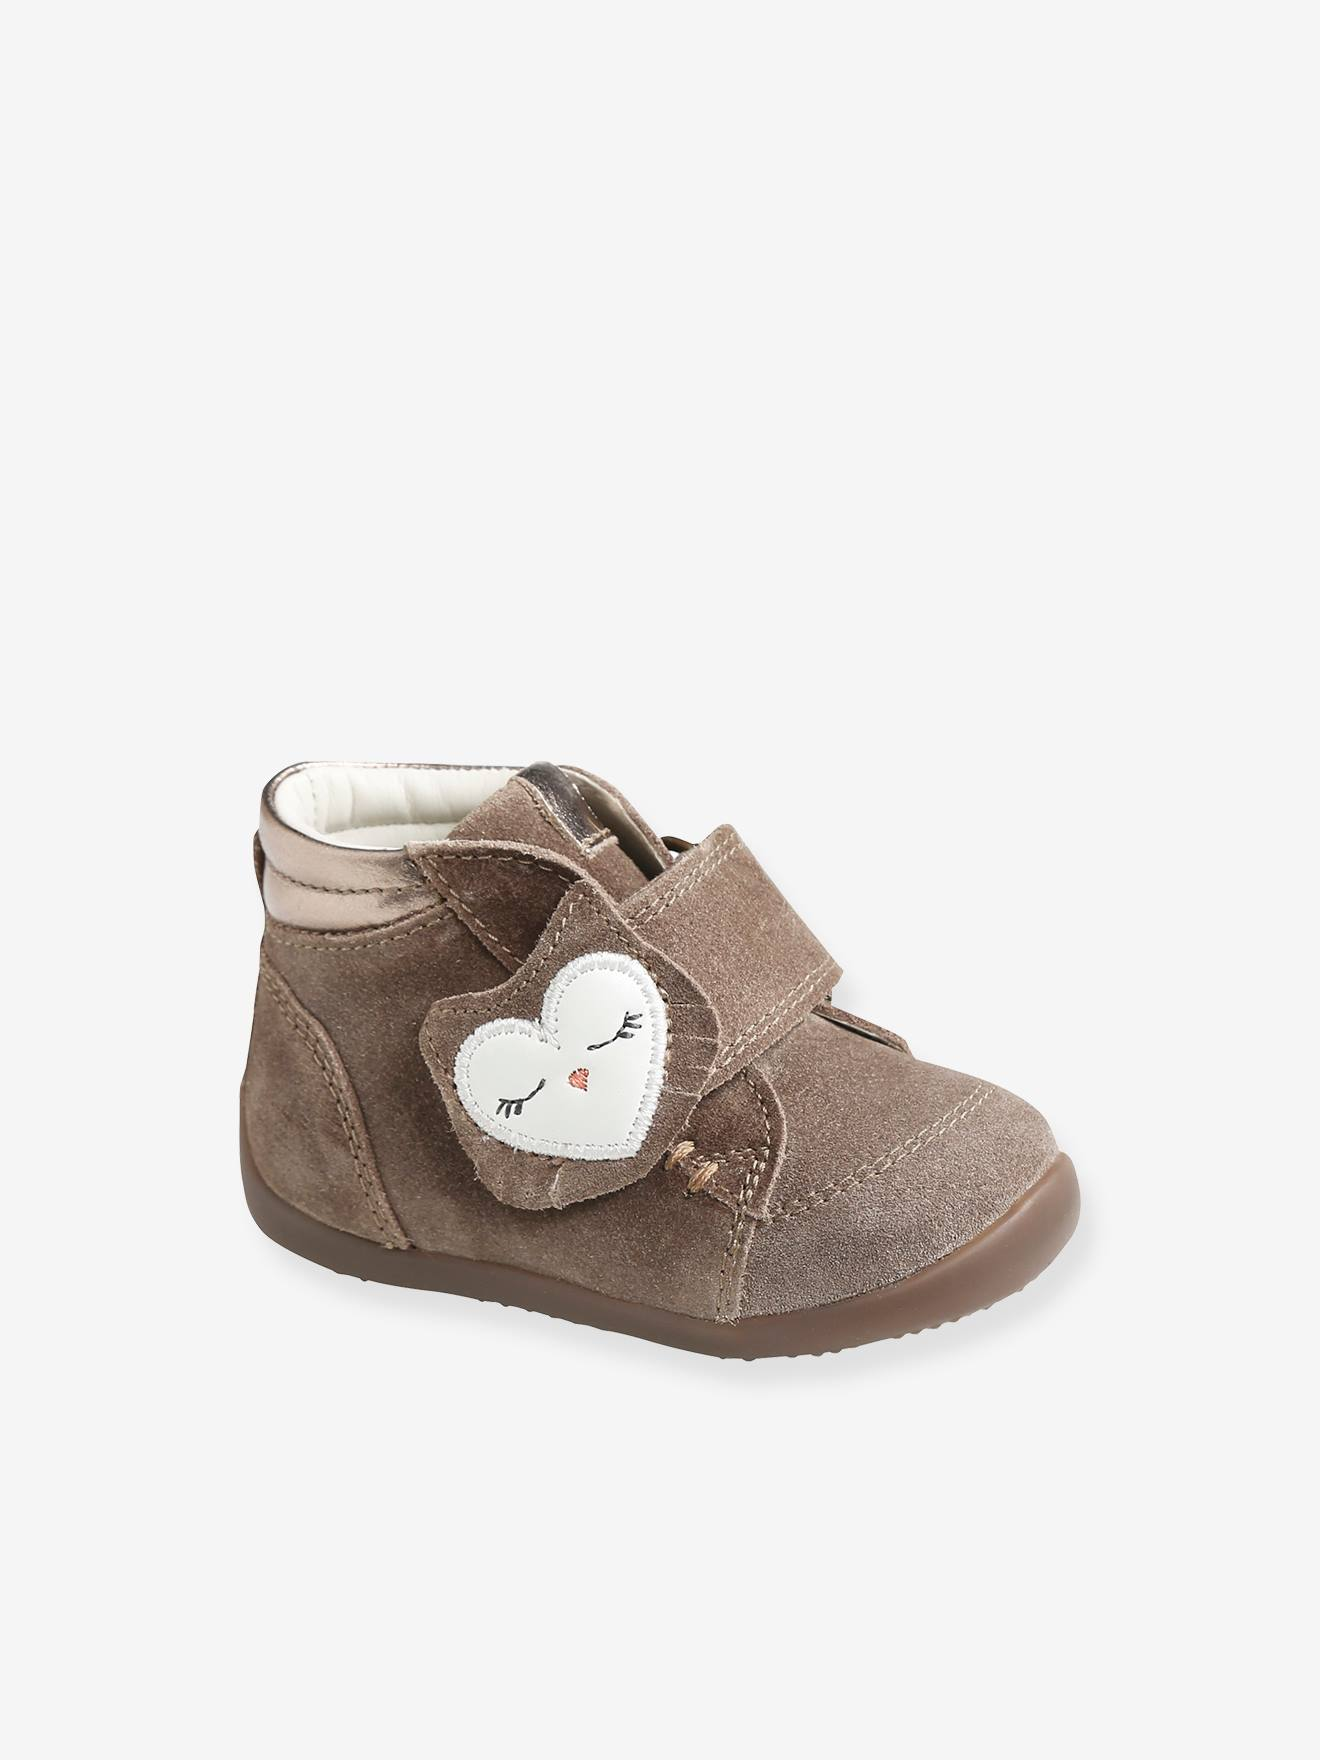 Baby Shoes With Ankle Support : shoes, ankle, support, Leather, Ankle, Boots, Girls,, Designed, First, Steps, Brown, Medium, Solid,, Shoes